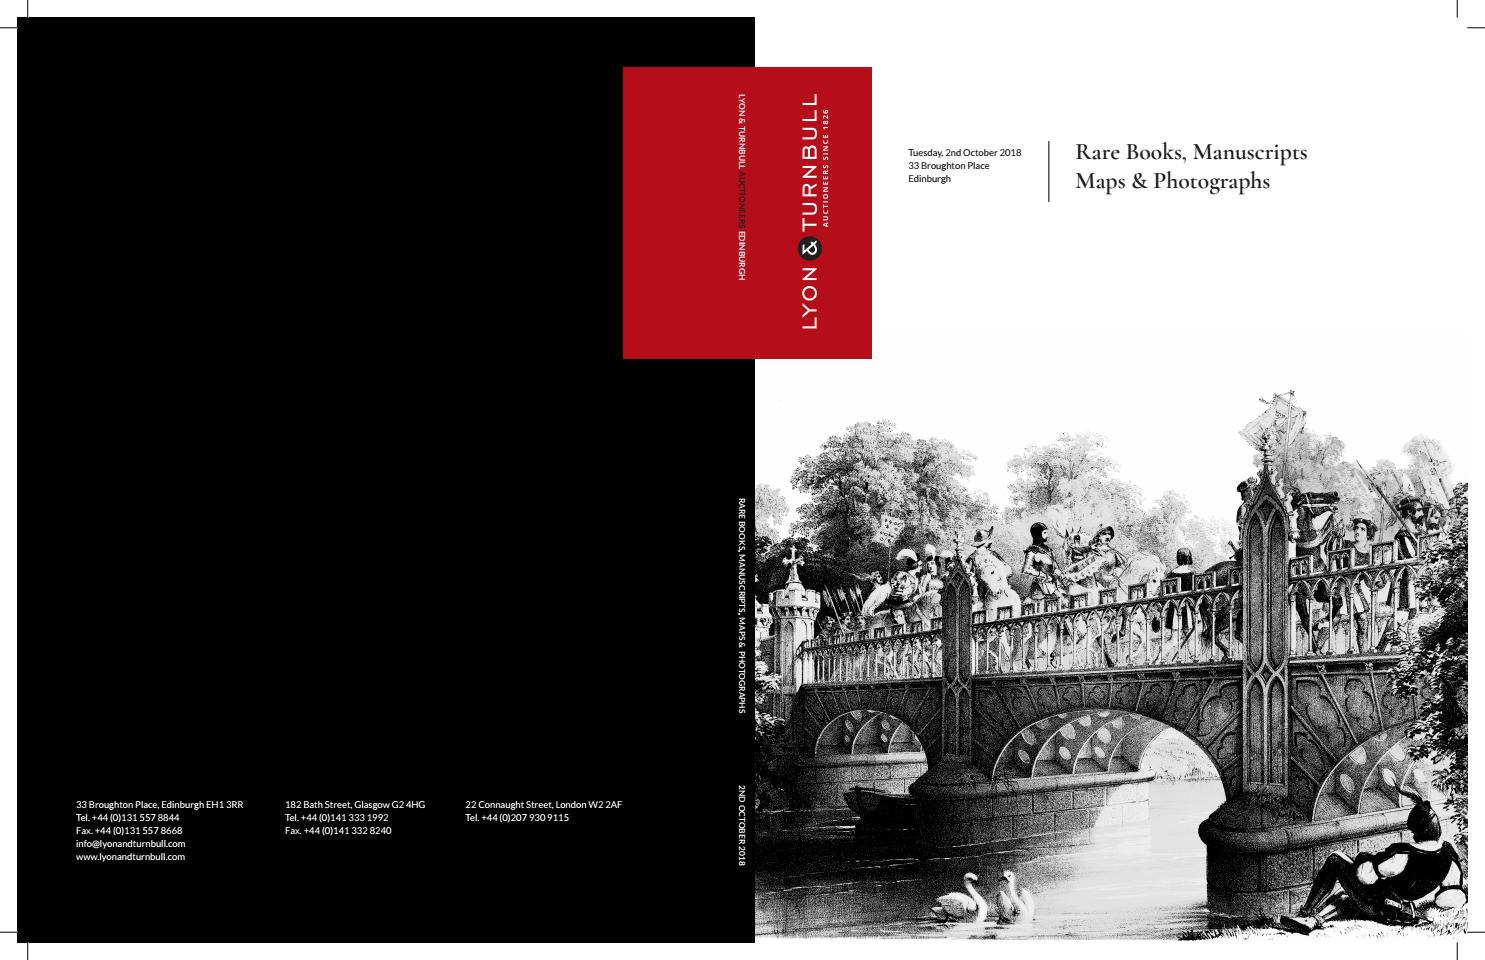 Rare Books, Manuscripts, Maps & Photographs | 02 Oct 2018 by